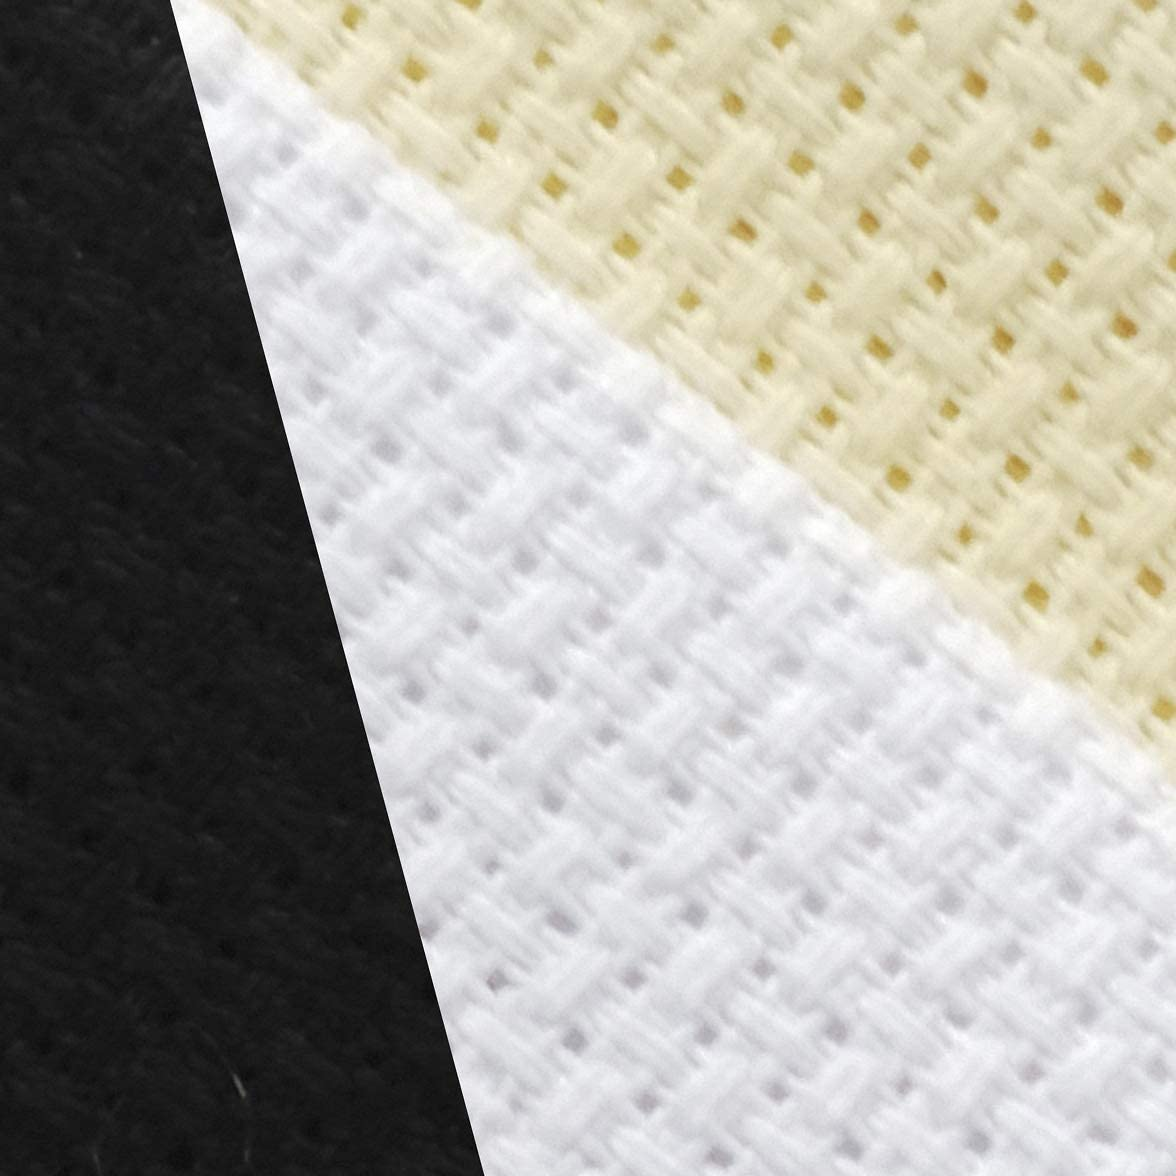 KCS 12 x 18 by 3 Pack 14CT Counted Cotton Aida Cloth Cross Stitch Fabric White+Cream+Black